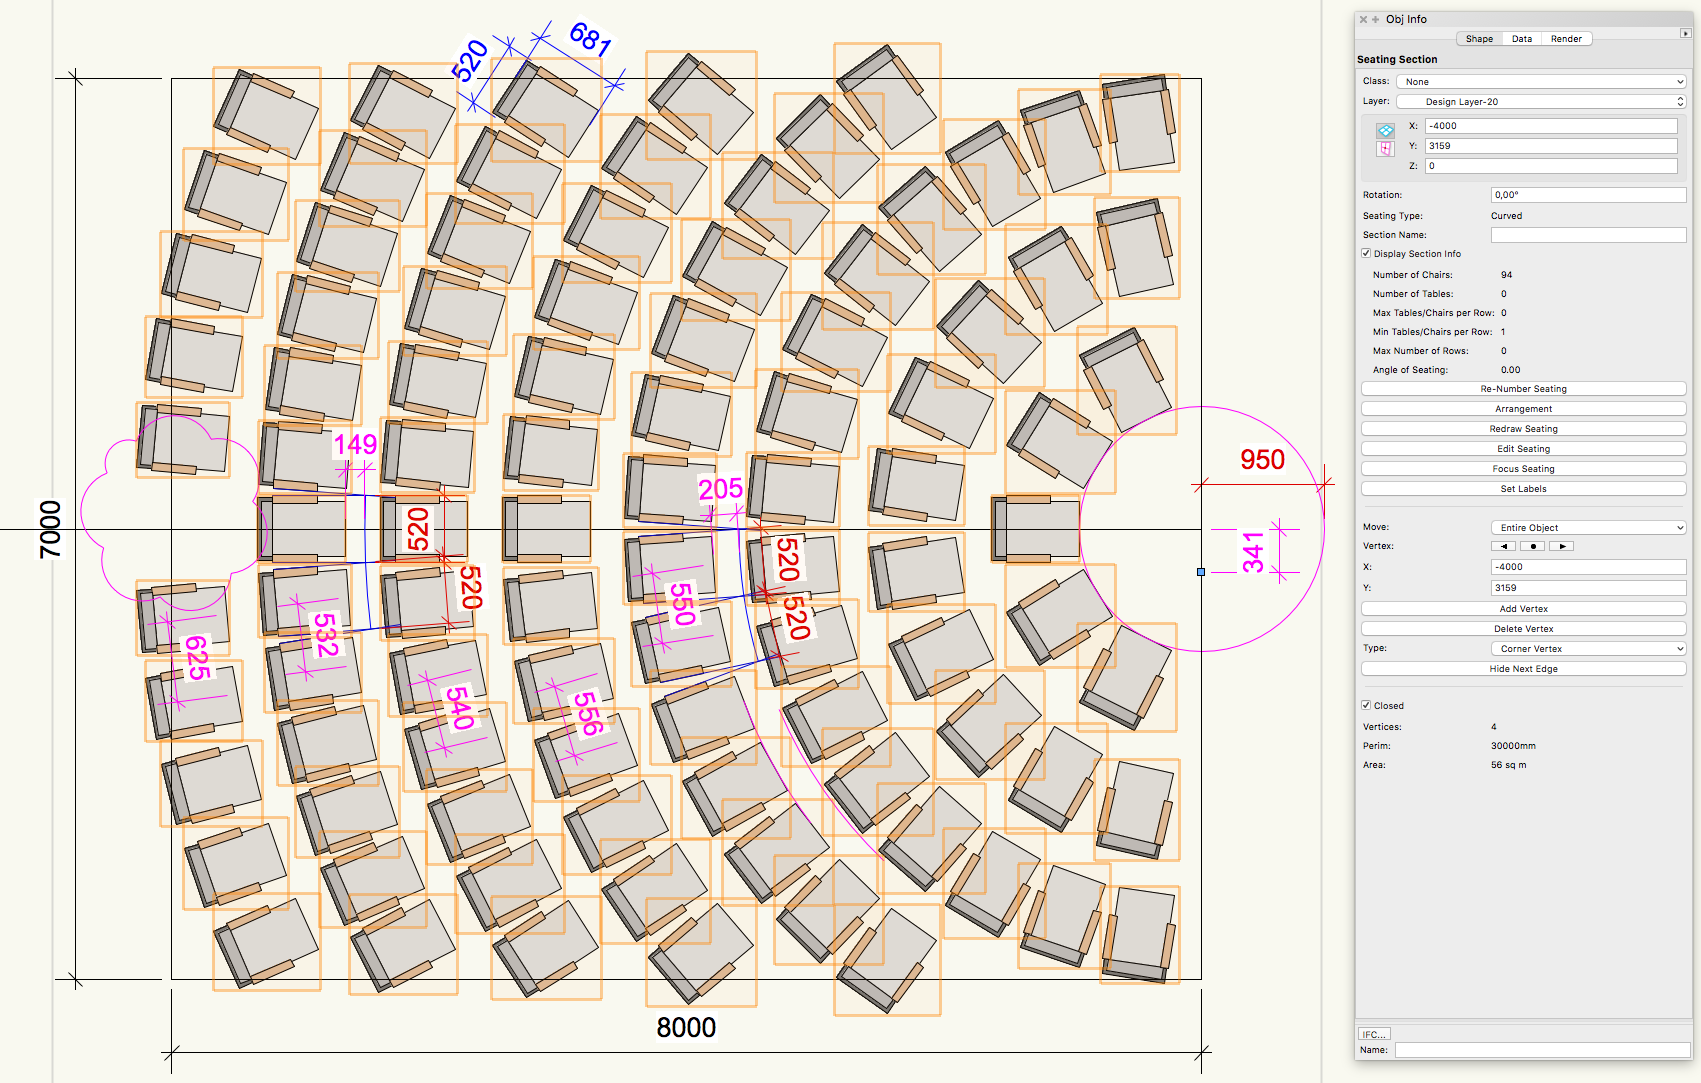 VW2017 seating section curved 20161130.png